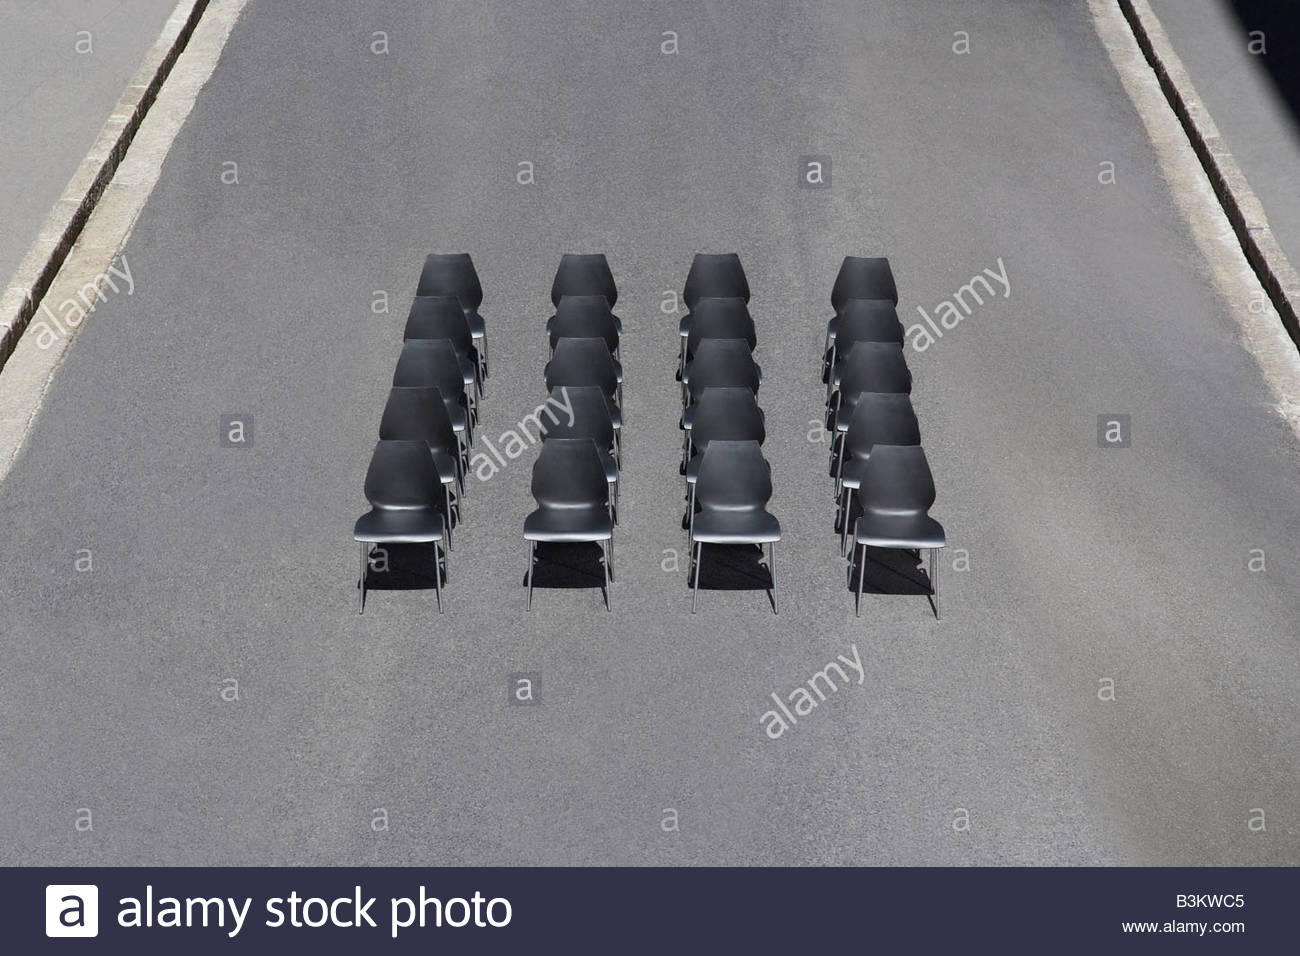 Empty office chairs in roadway - Stock Image